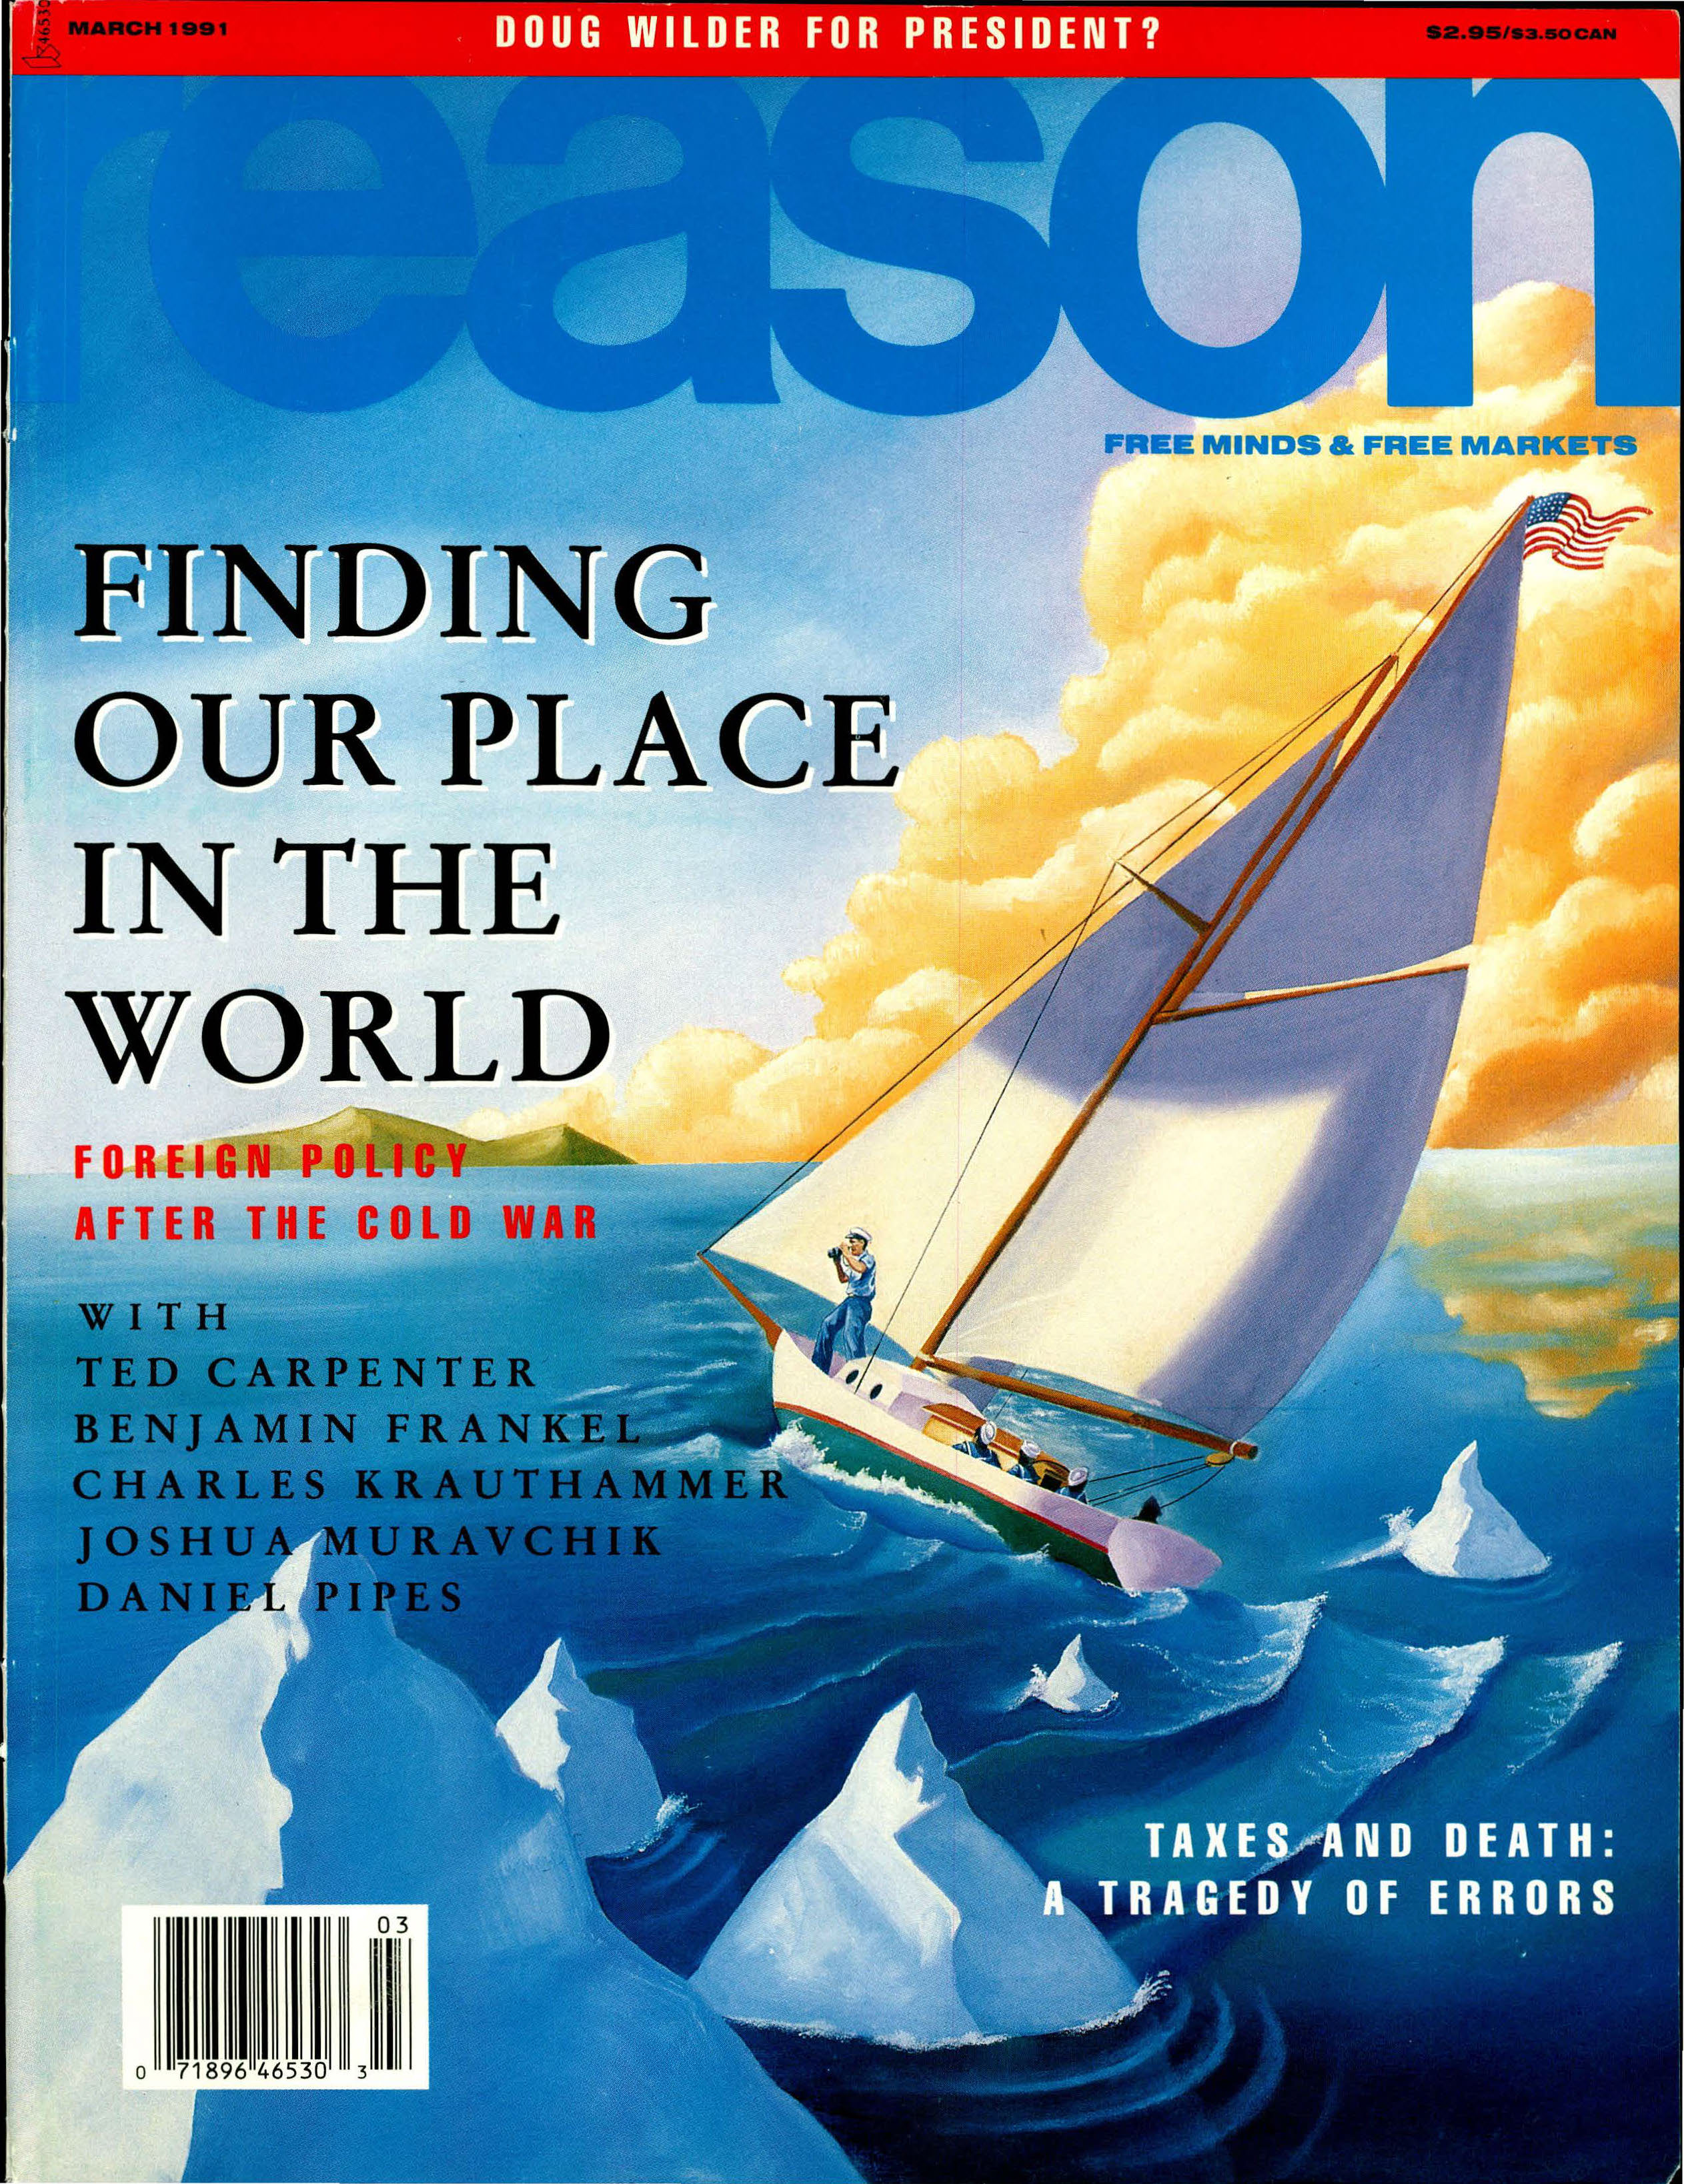 Reason Magazine, March 1991 cover image